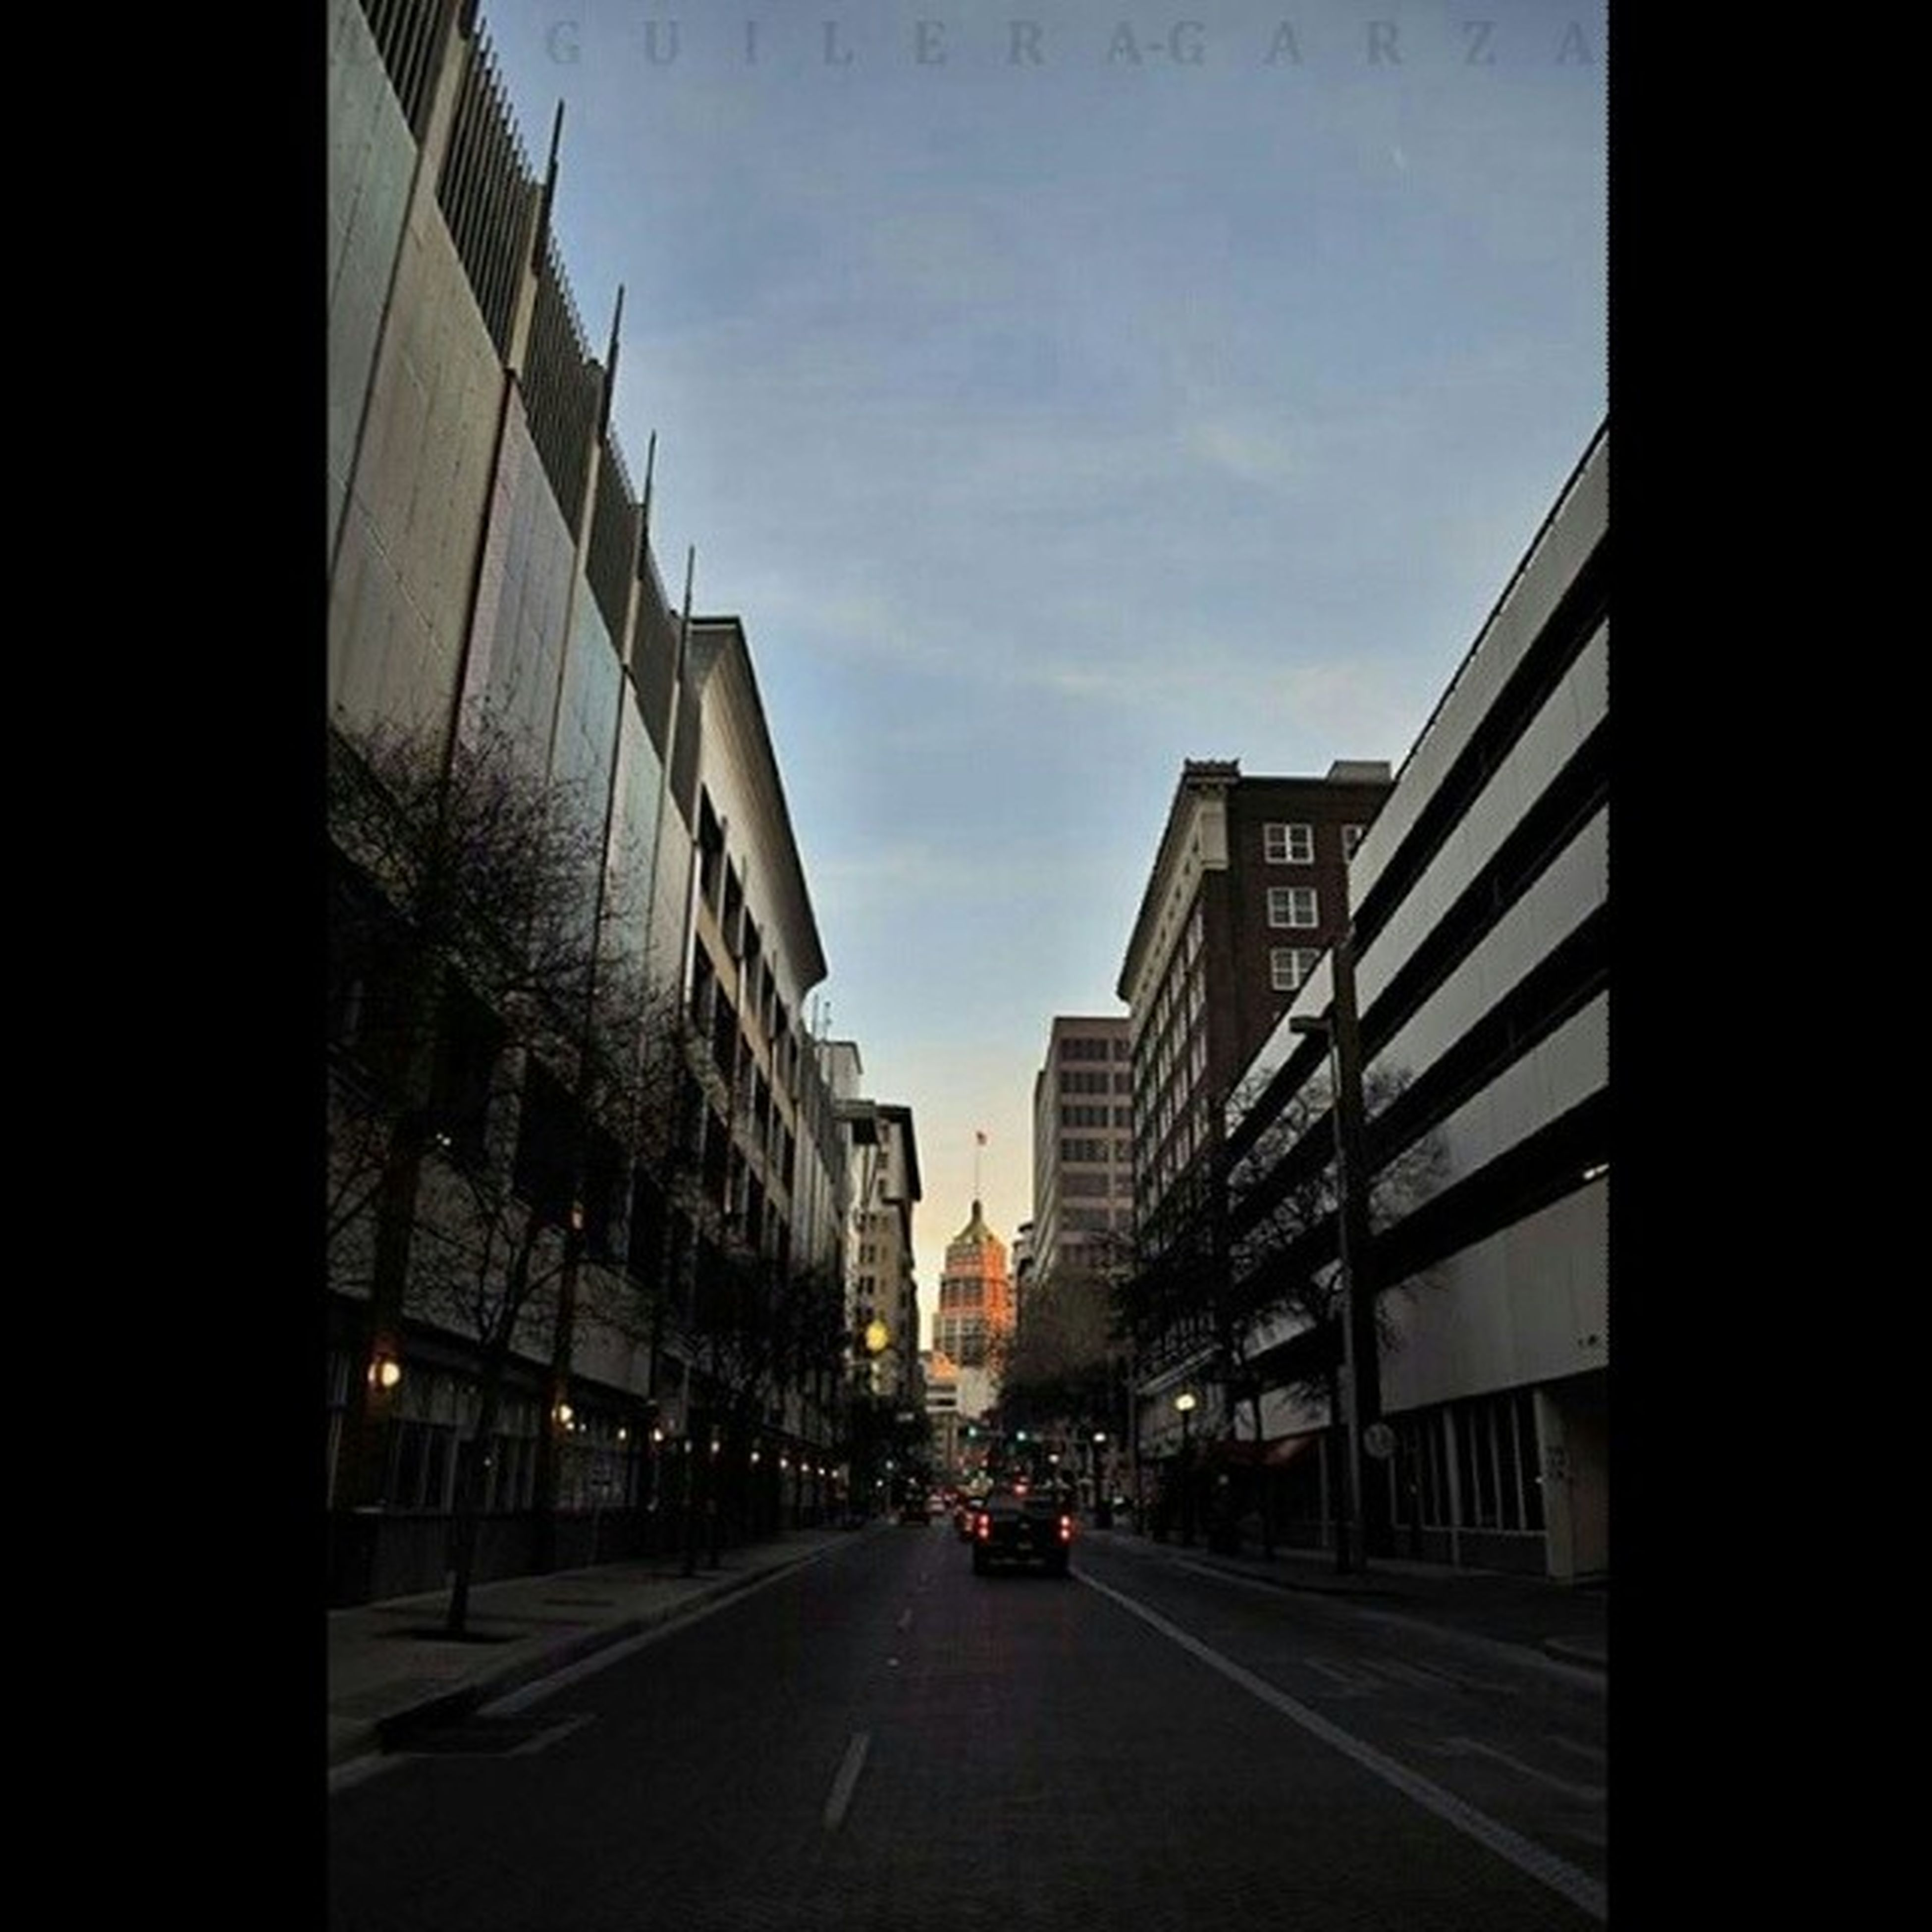 architecture, building exterior, built structure, the way forward, transportation, city, road, diminishing perspective, street, sky, road marking, car, building, vanishing point, city life, empty, outdoors, long, no people, city street